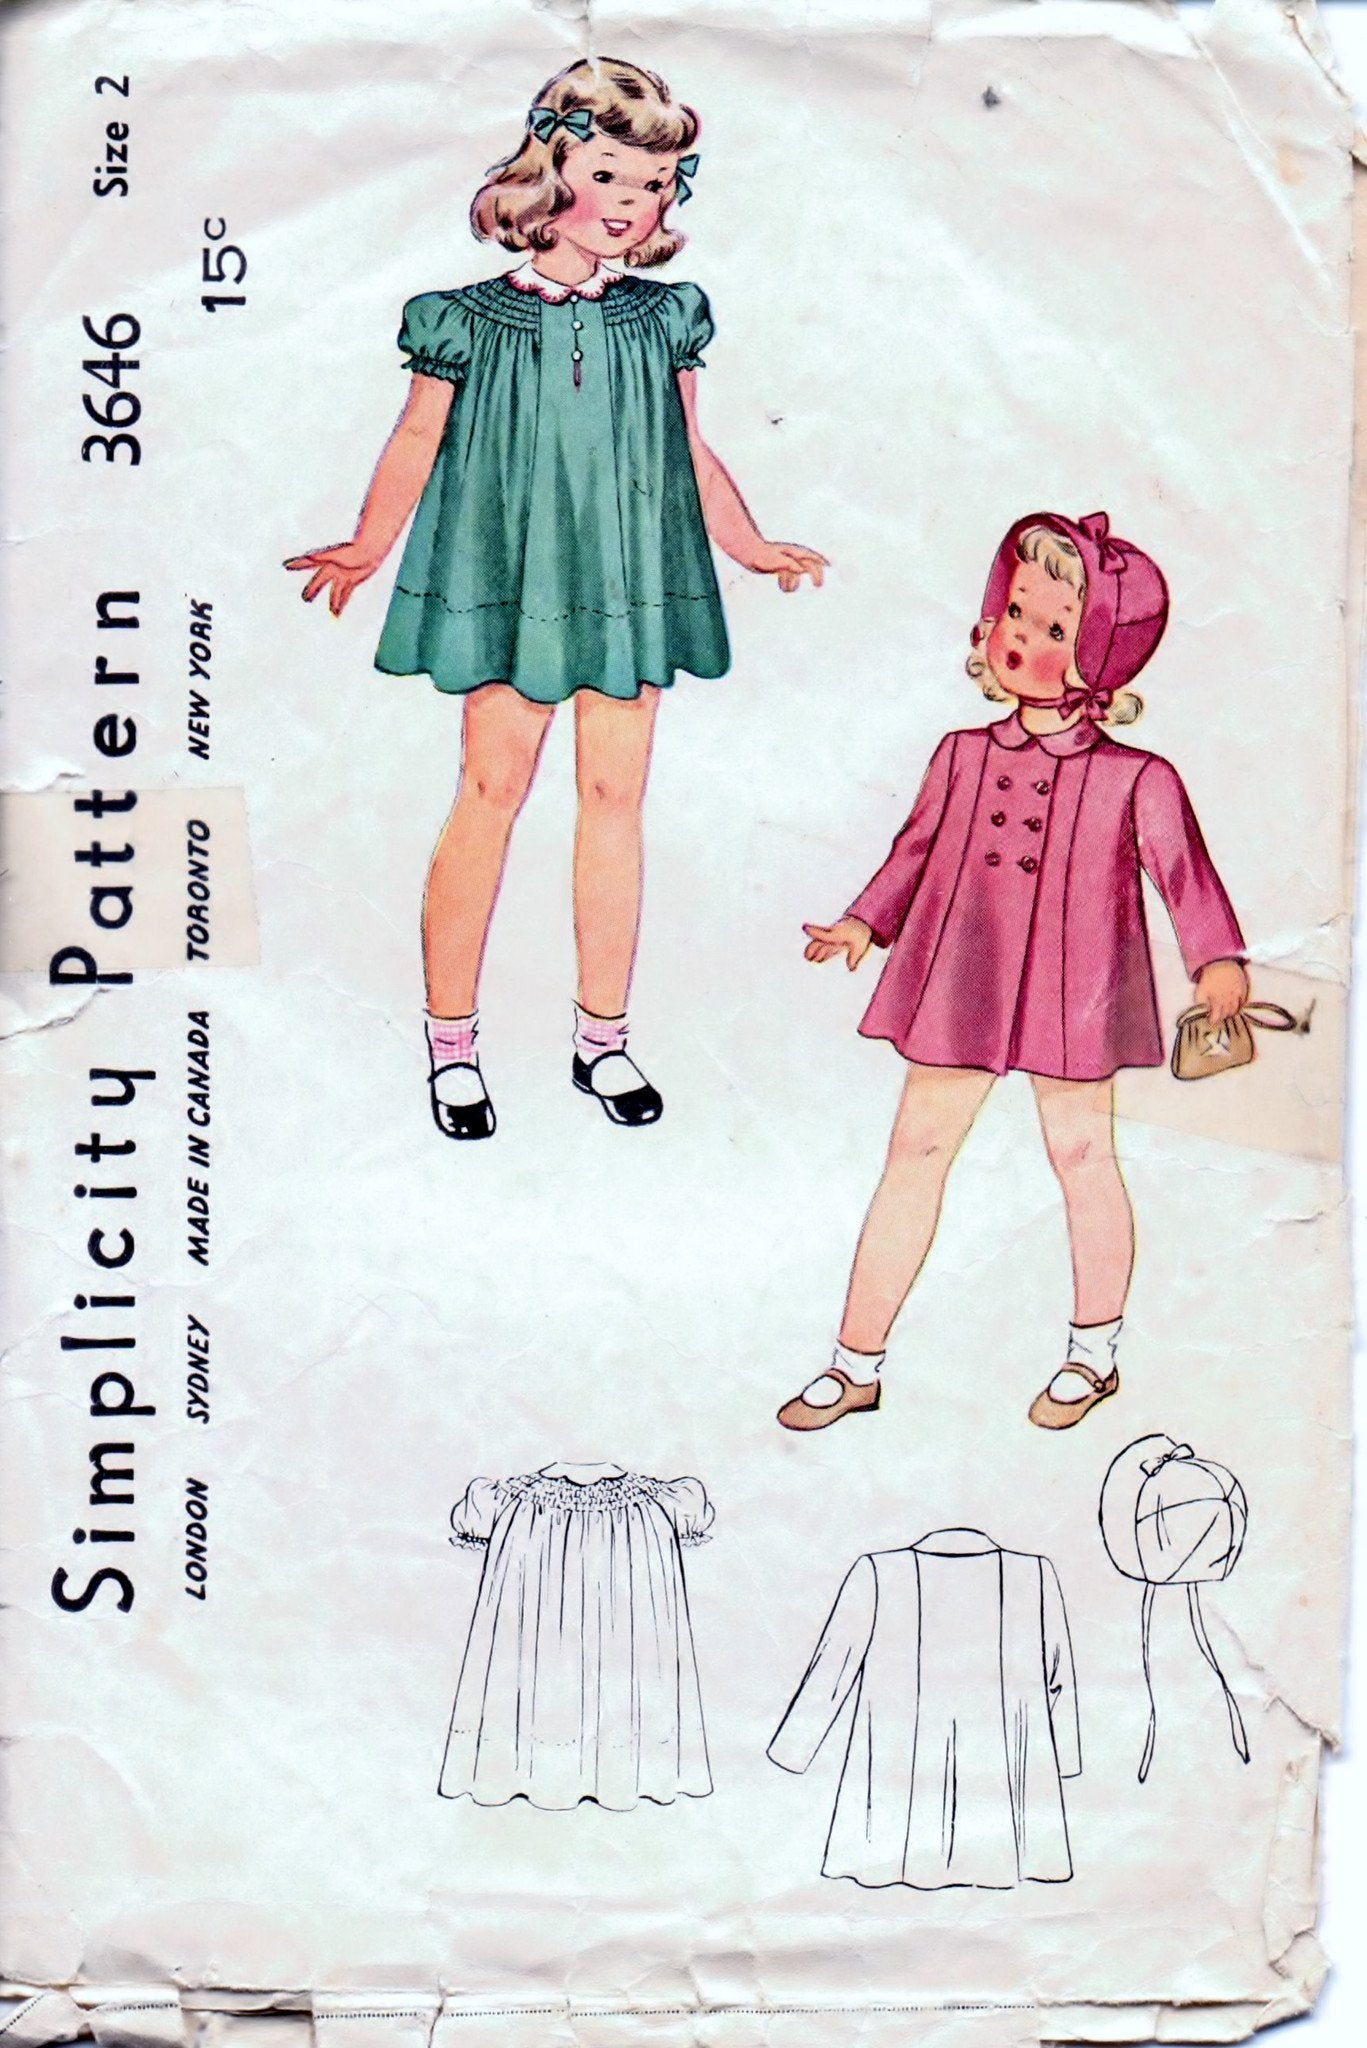 Simplicity 3646 Toddler Little Girls  Dress Coat Hat Vintage 1940's Sewing Pattern Unprinted - VintageStitching - Vintage Sewing Patterns